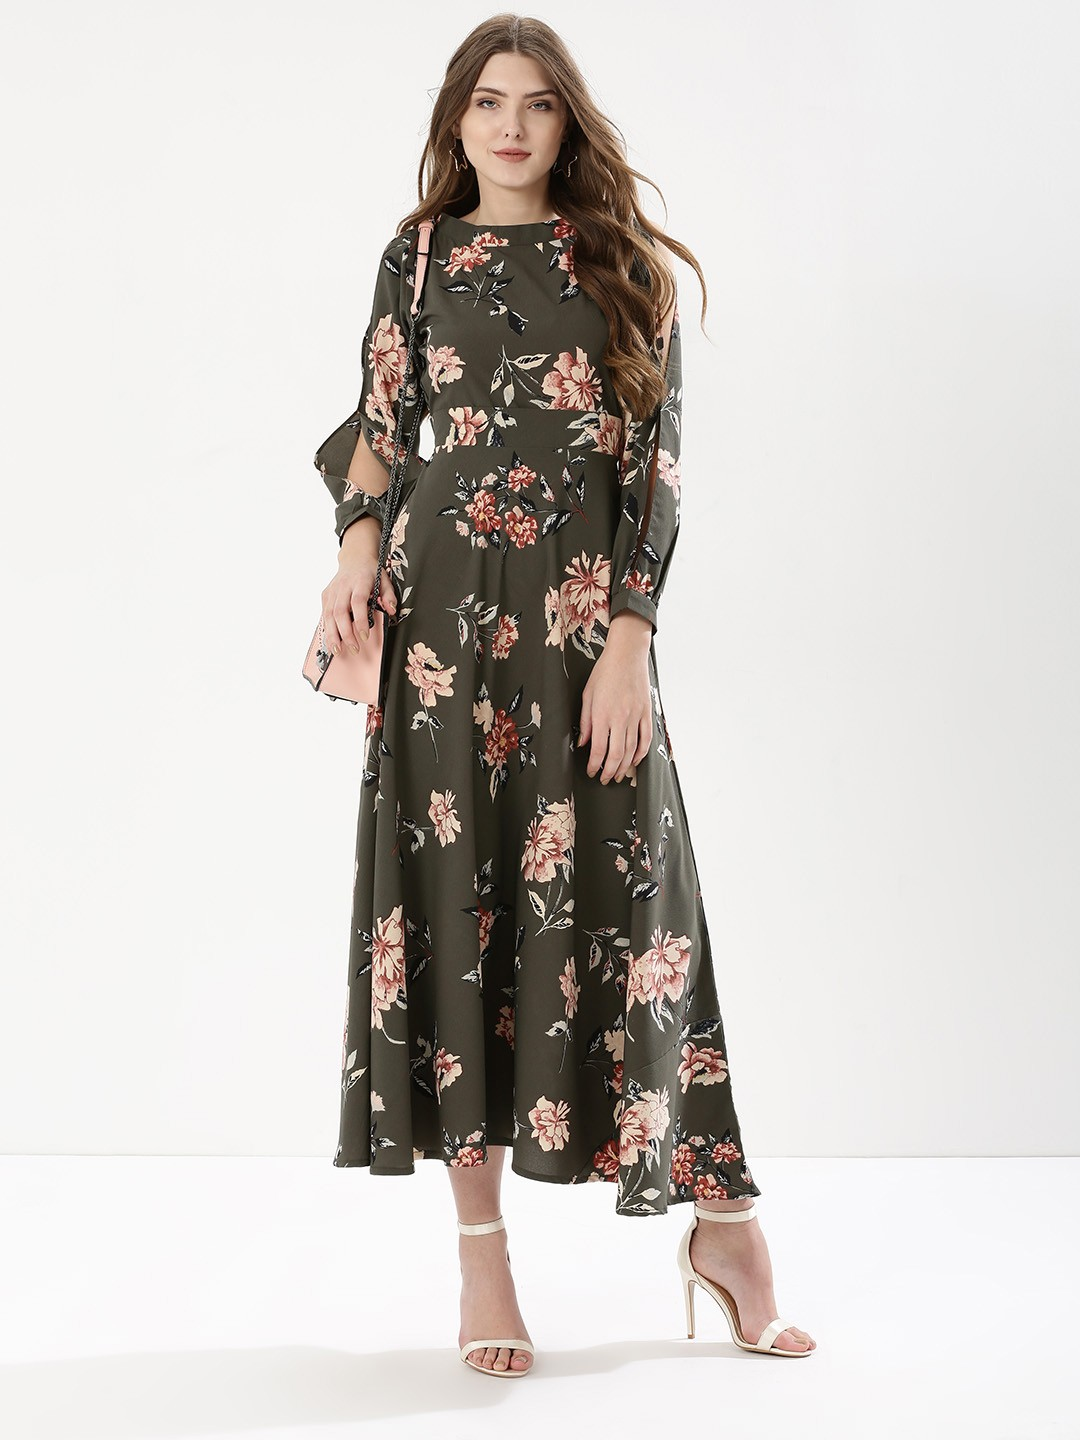 Buy CLOSET DRAMA Floral Print Maxi Dress For Women - Women's Olive ...